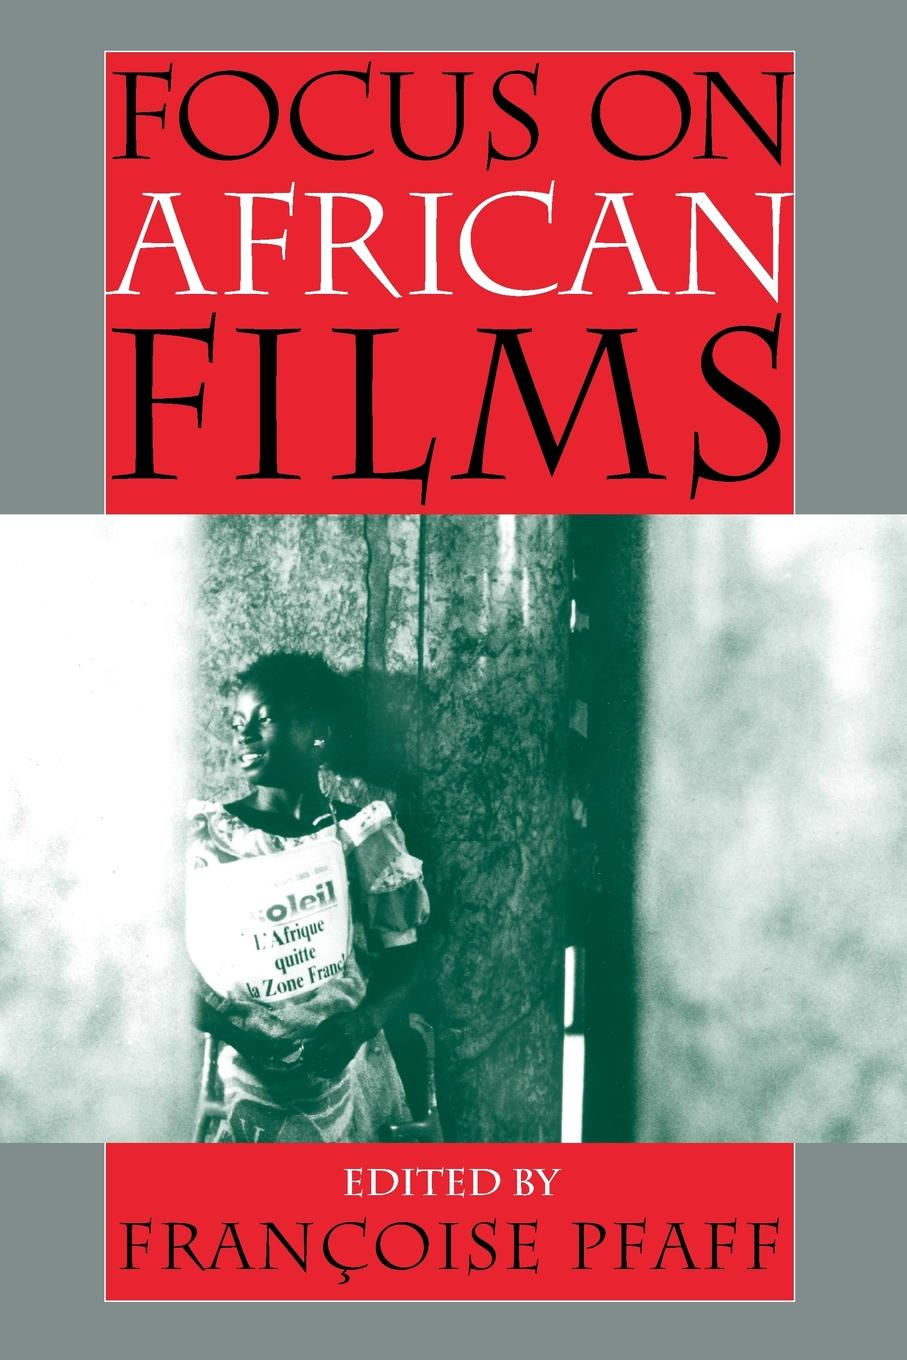 Focus on African Films symbolist films